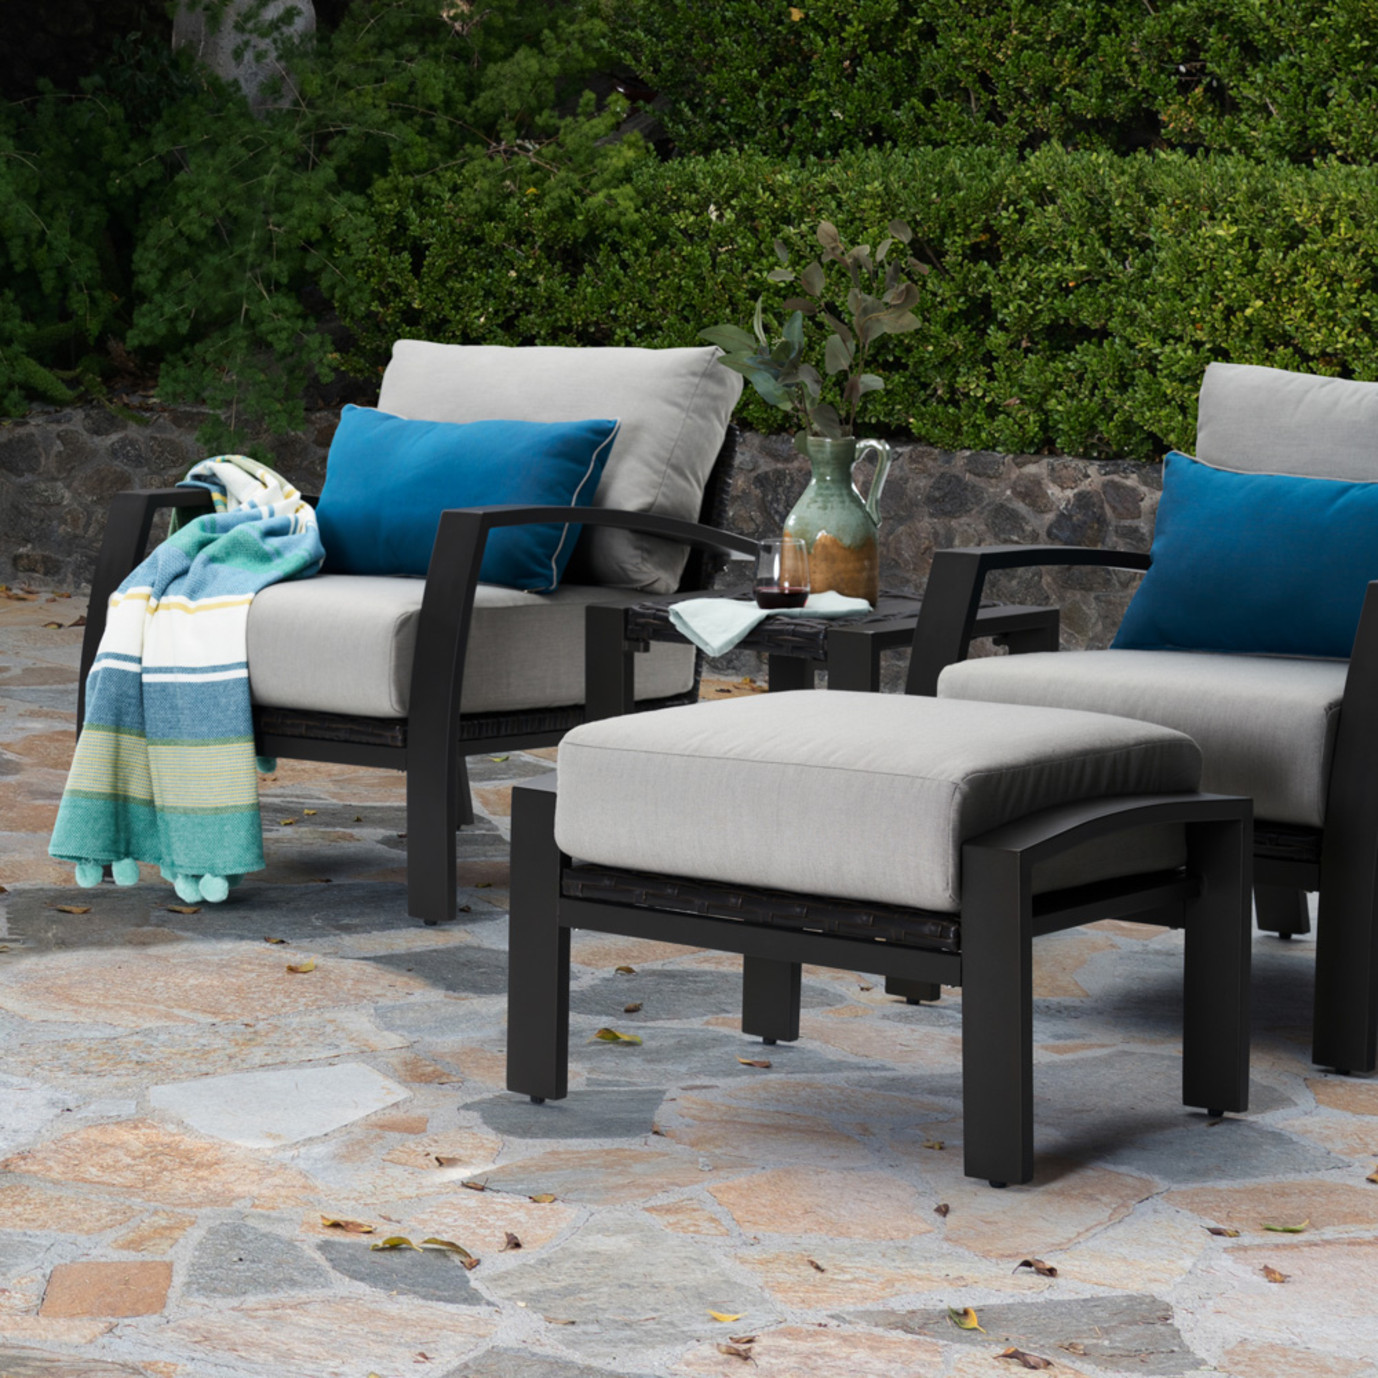 Portofino Repose Open Club Ottomans - Dove Gray